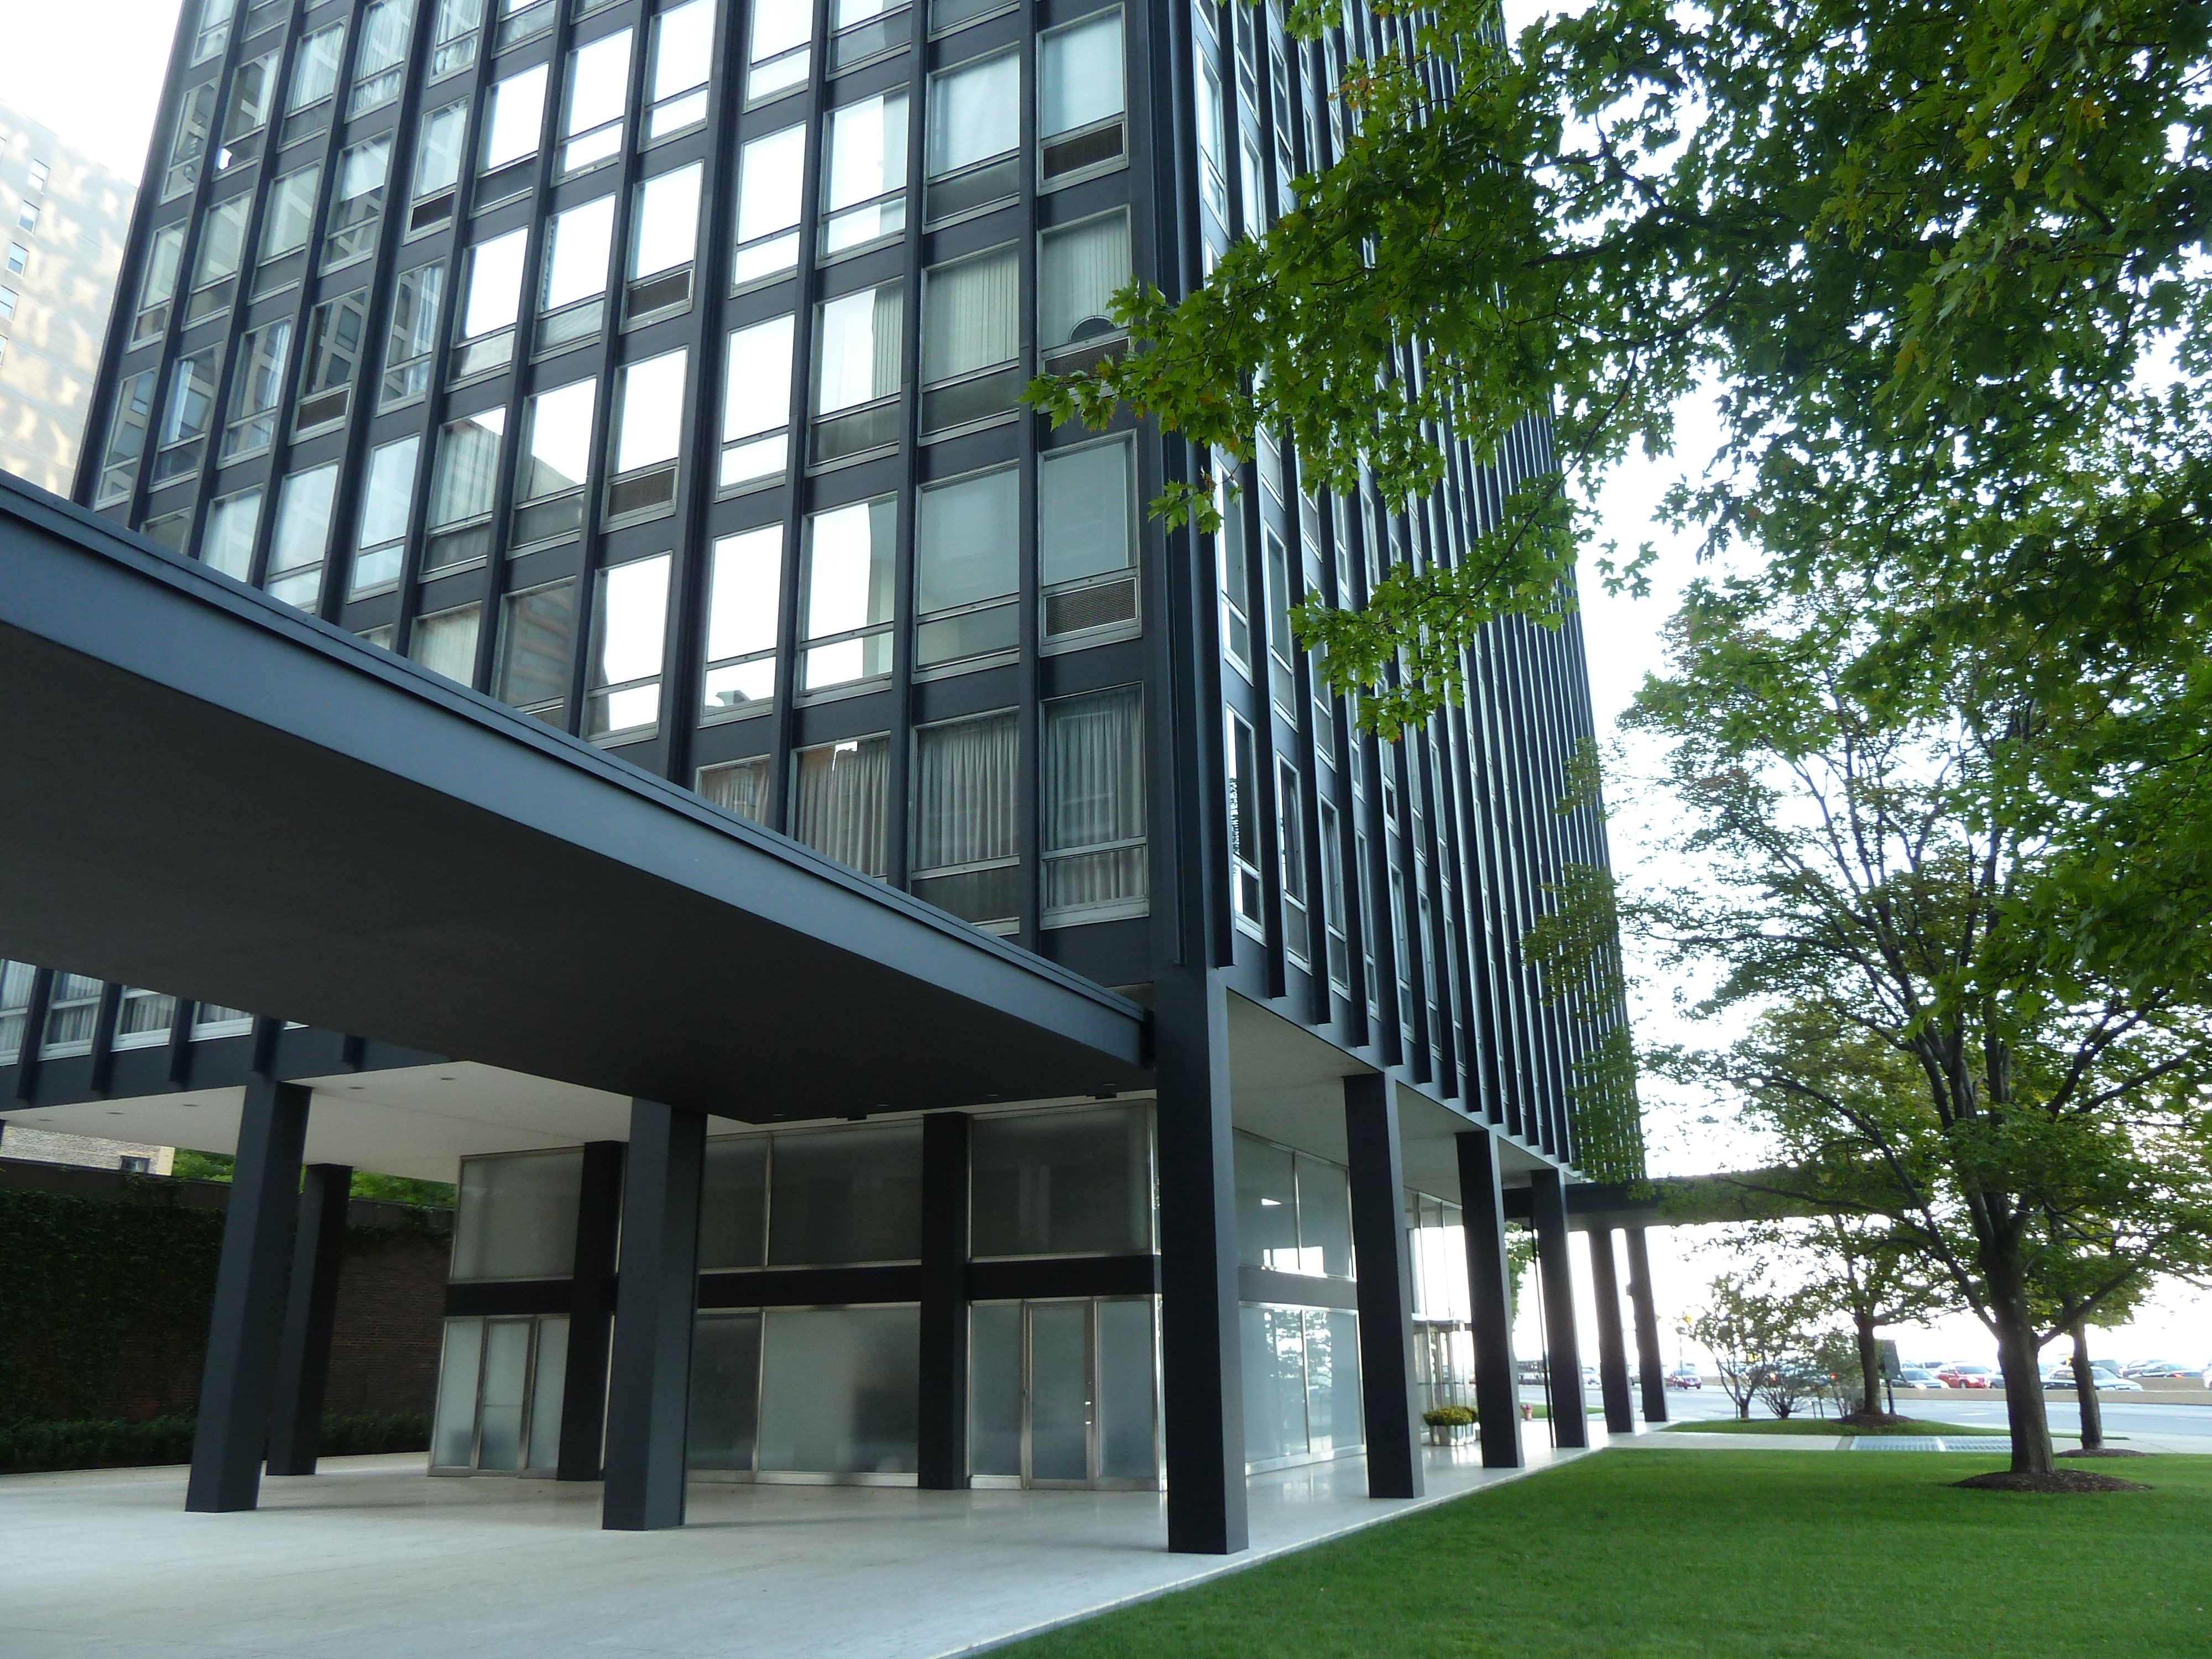 twin apartment towers by ludwig mies van der rohe 860 880 lake shore drive chicago. Black Bedroom Furniture Sets. Home Design Ideas